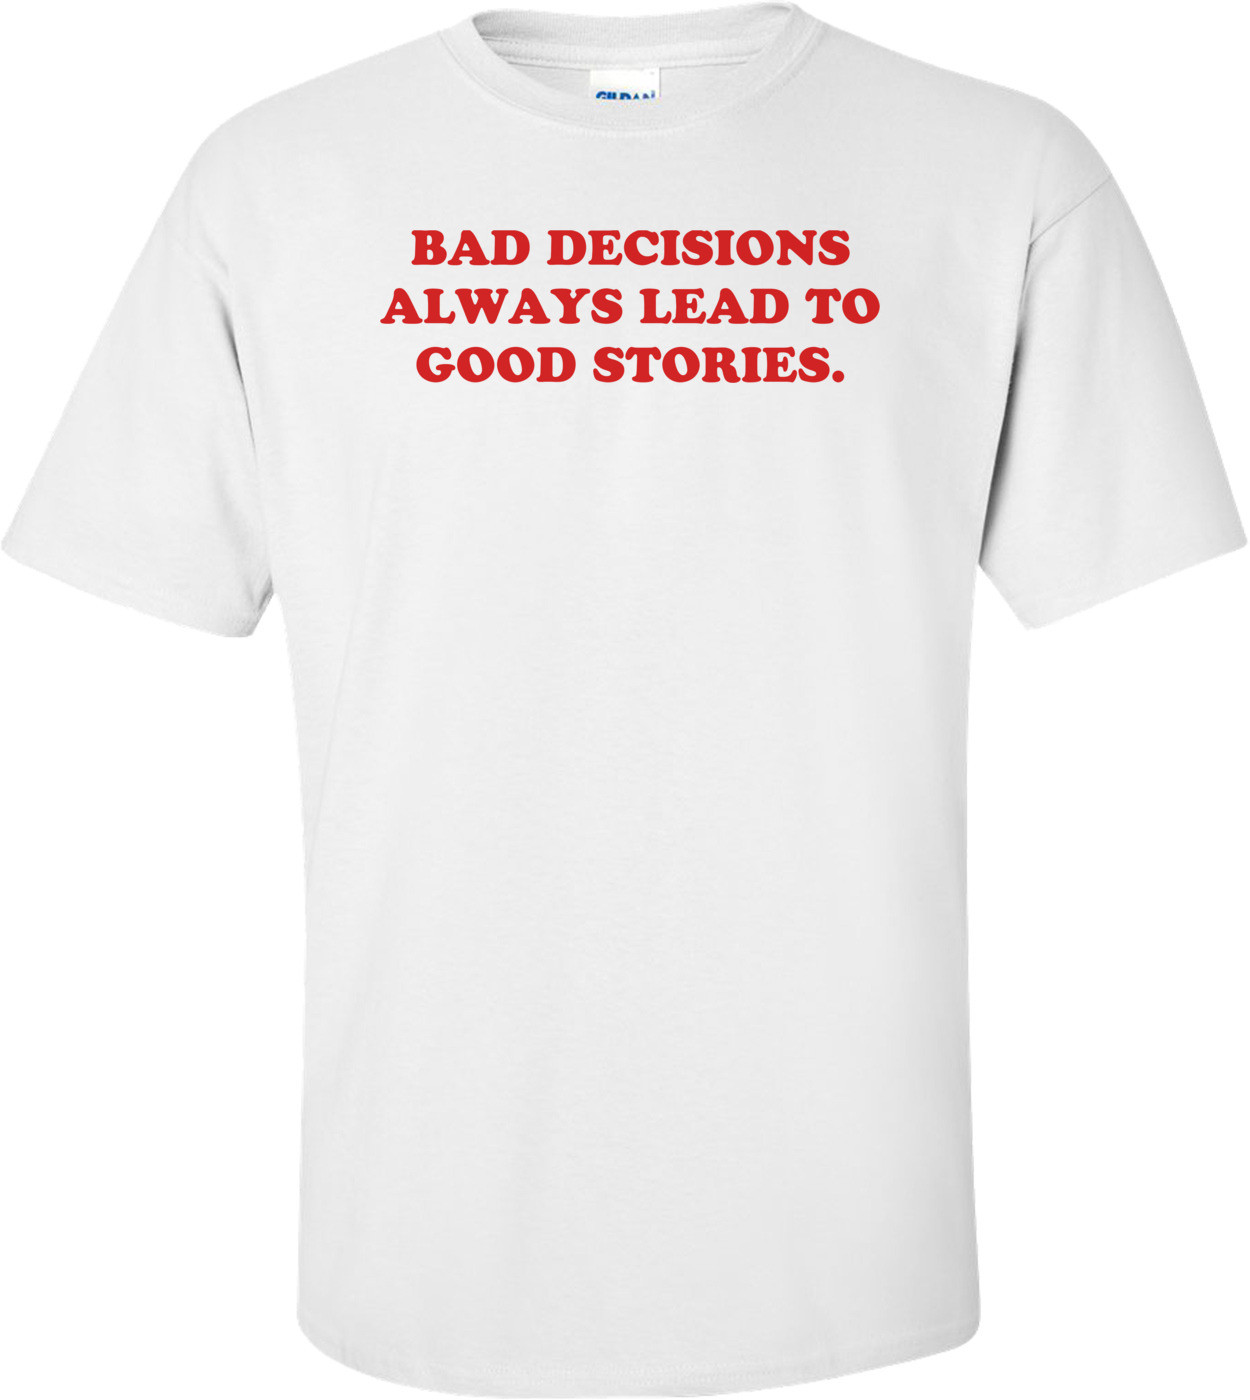 BAD DECISIONS ALWAYS LEAD TO GOOD STORIES. Shirt